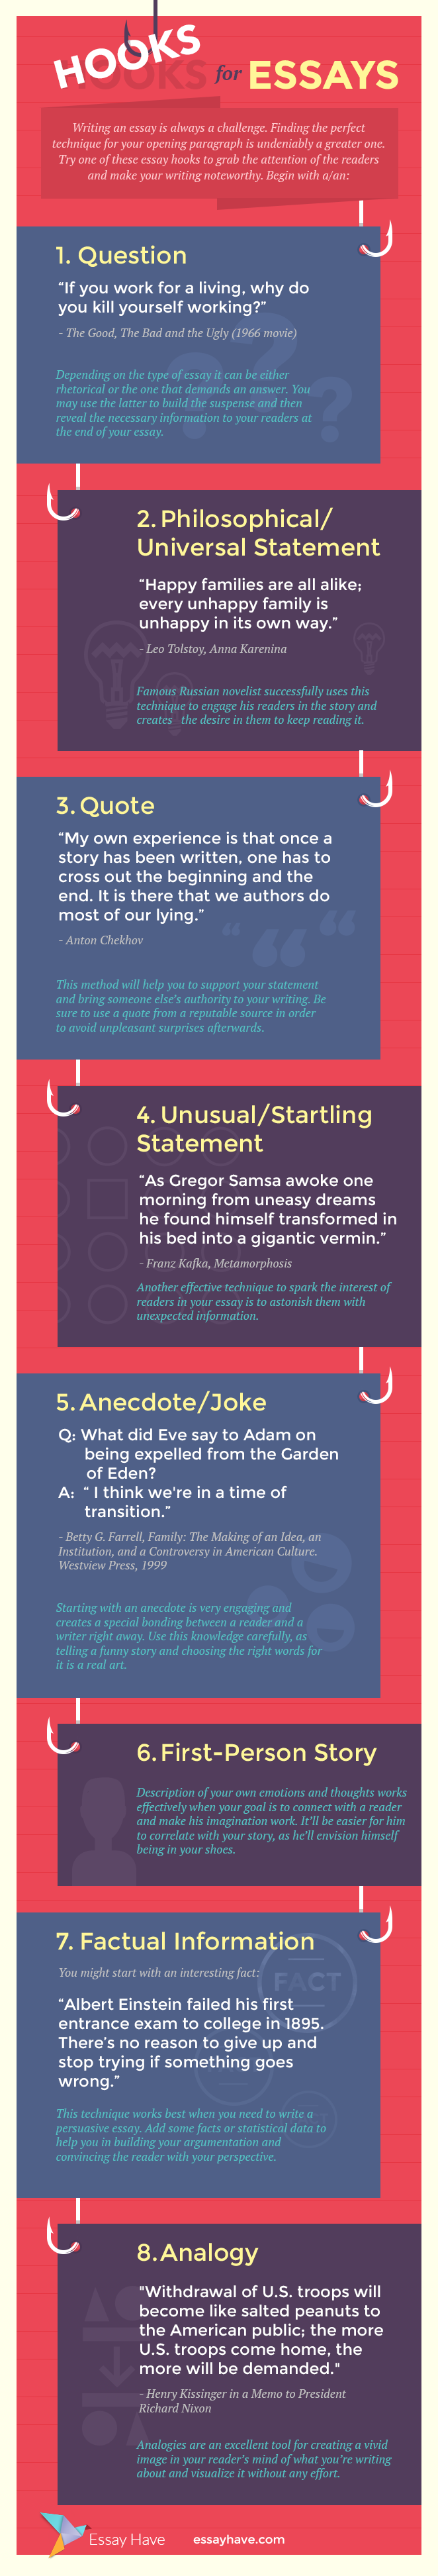 essay hooks infographic infographic education infographic and  good essay introductons this handout explains the functions of introductions your entire essay will be a response to this so it is a good idea to use the